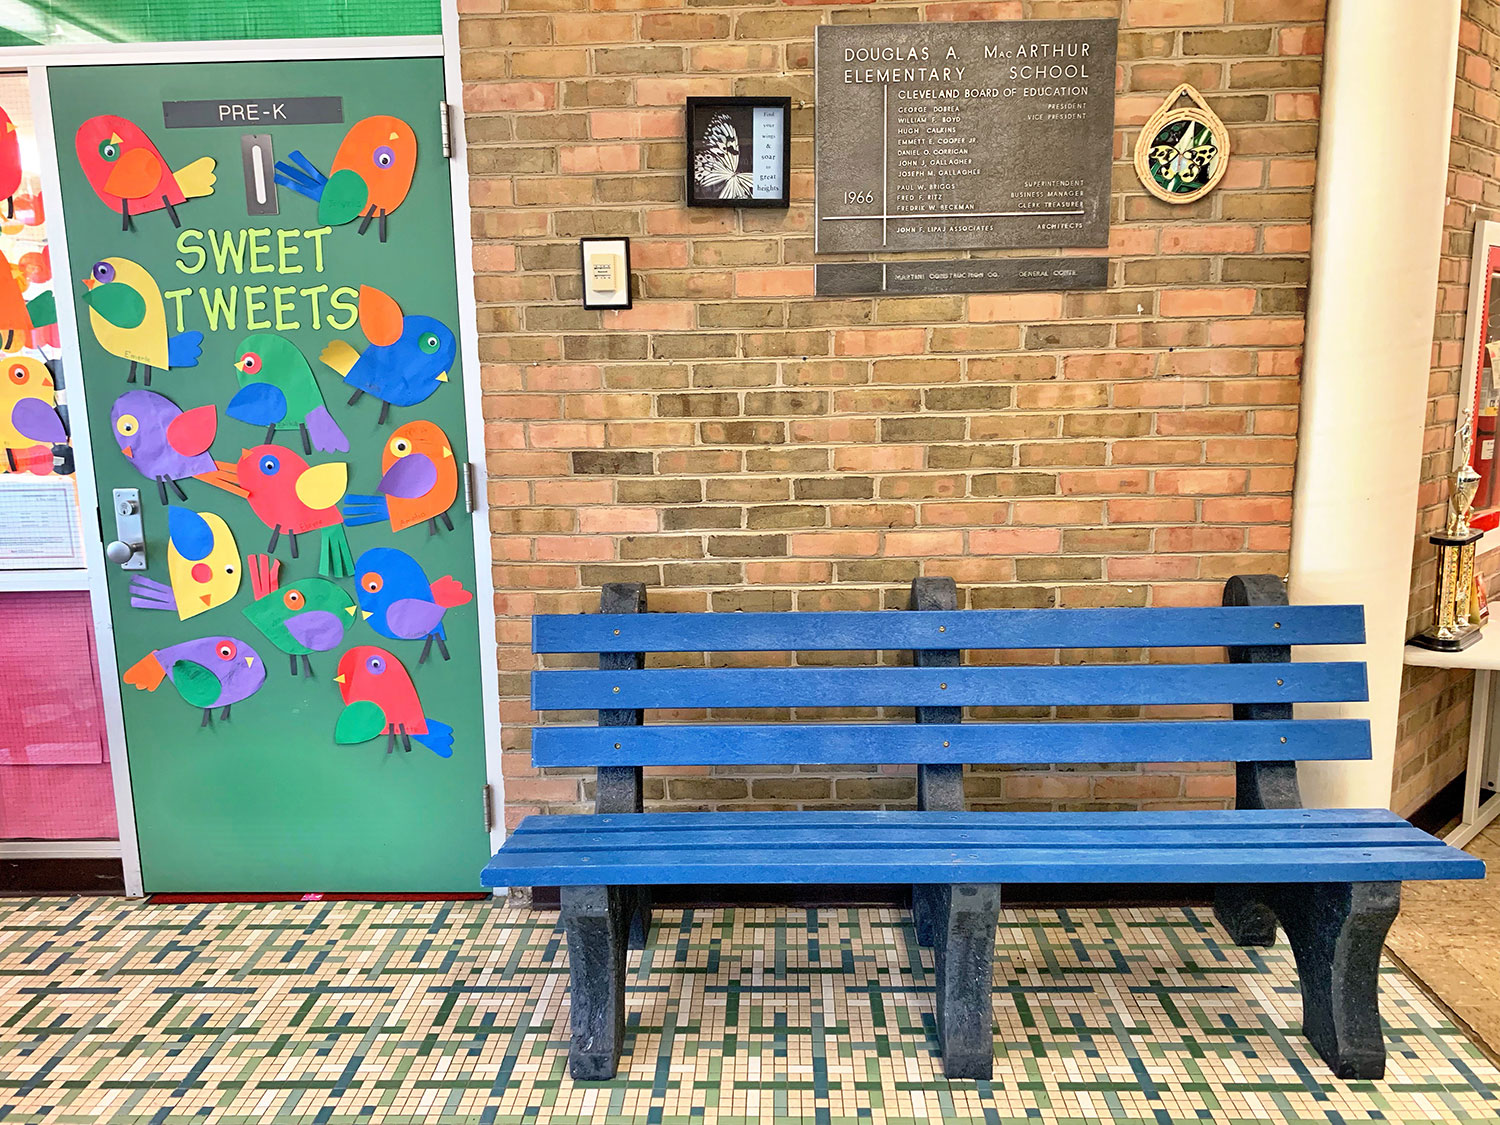 Another buddy bench